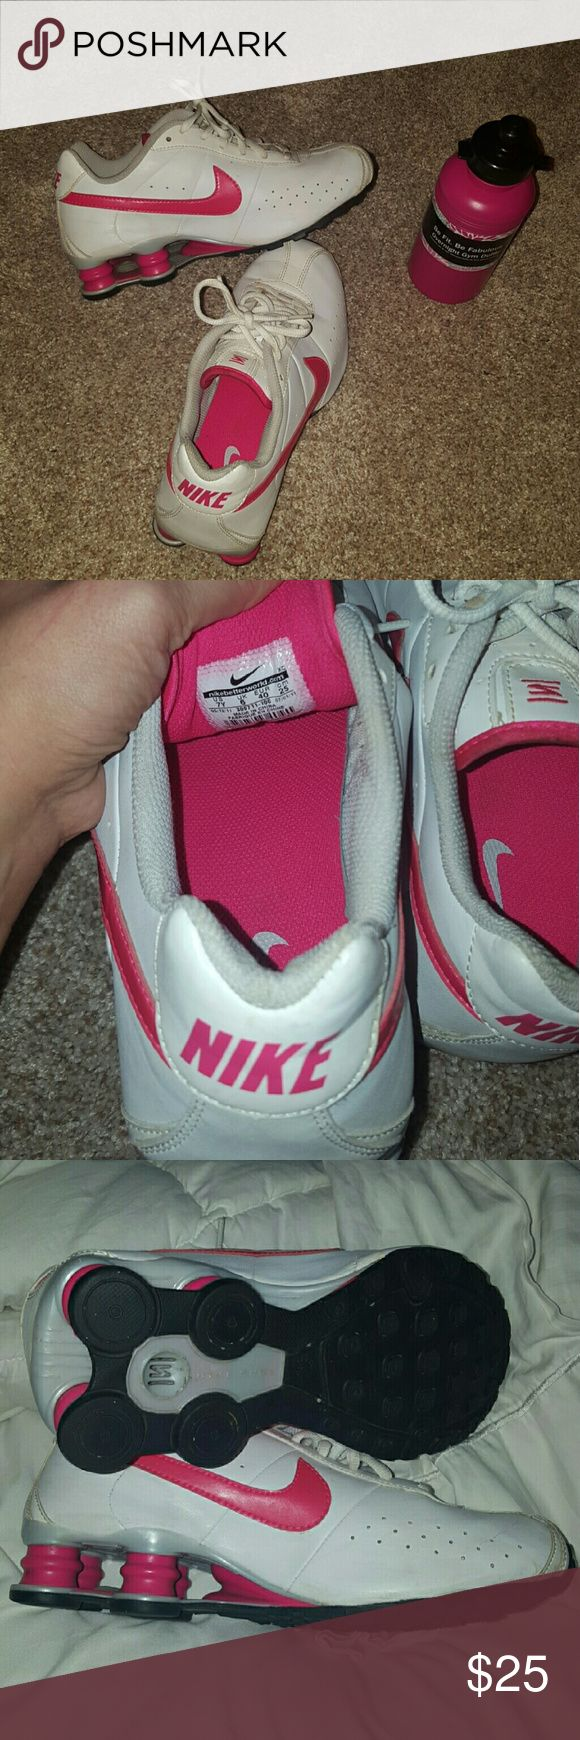 NIKE SHOCKS Hot pink and white These shoes are in great condition. Some slight signs of wear from the handful of times I've worn them. The size says:  US 7Y (as shown in picture #2)  but I wear a women's 7 or 8 depending on the shoe and these fit perfectly Nike Shoes Sneakers